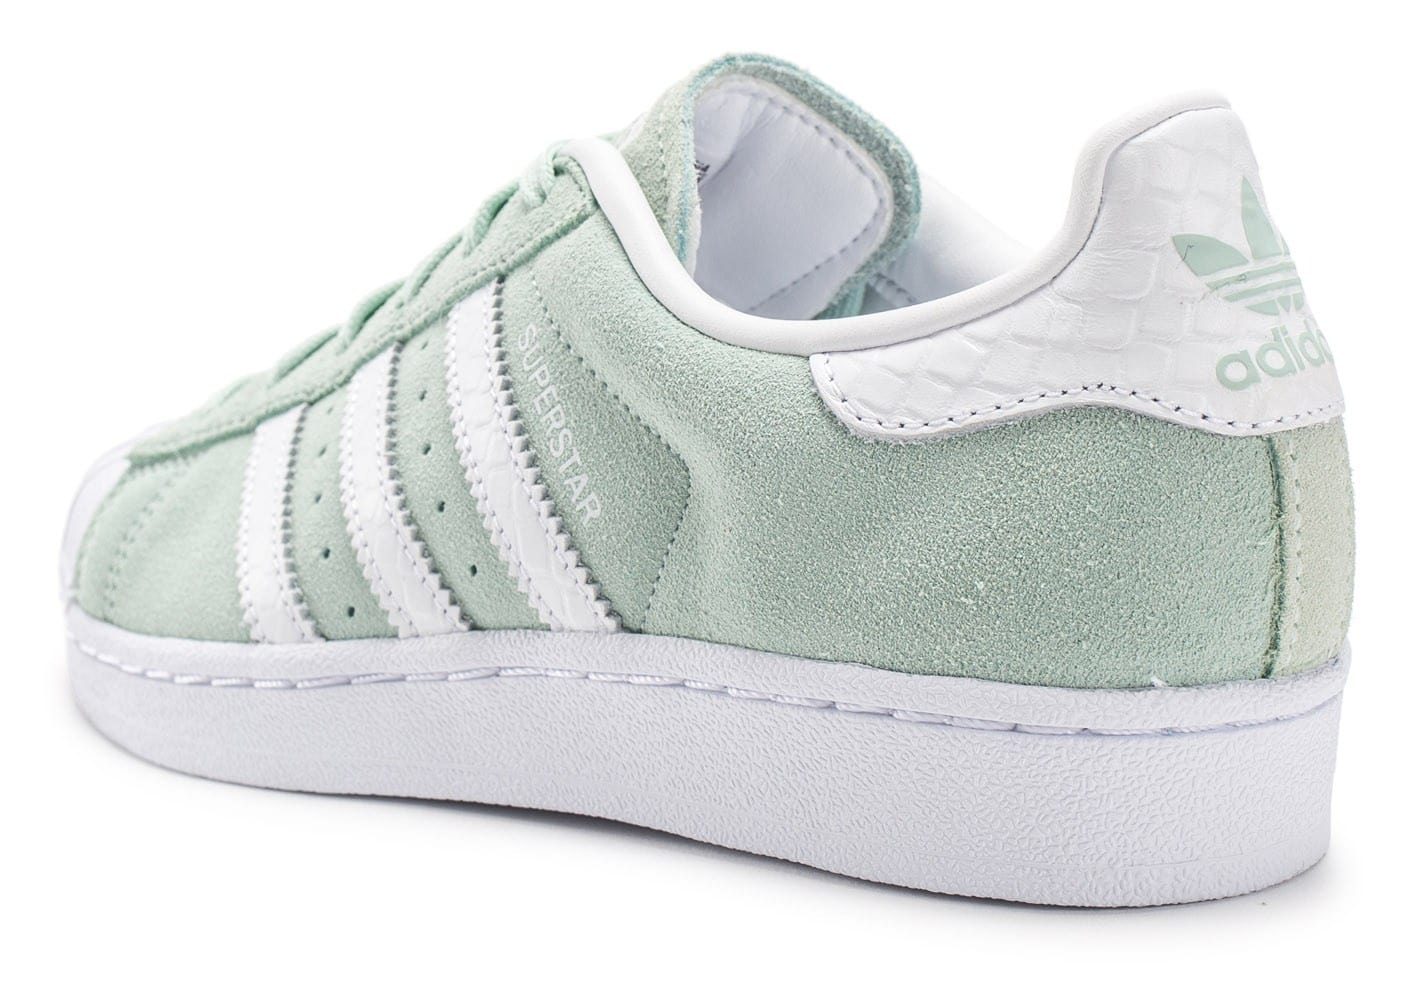 adidas superstar vert pale. Black Bedroom Furniture Sets. Home Design Ideas